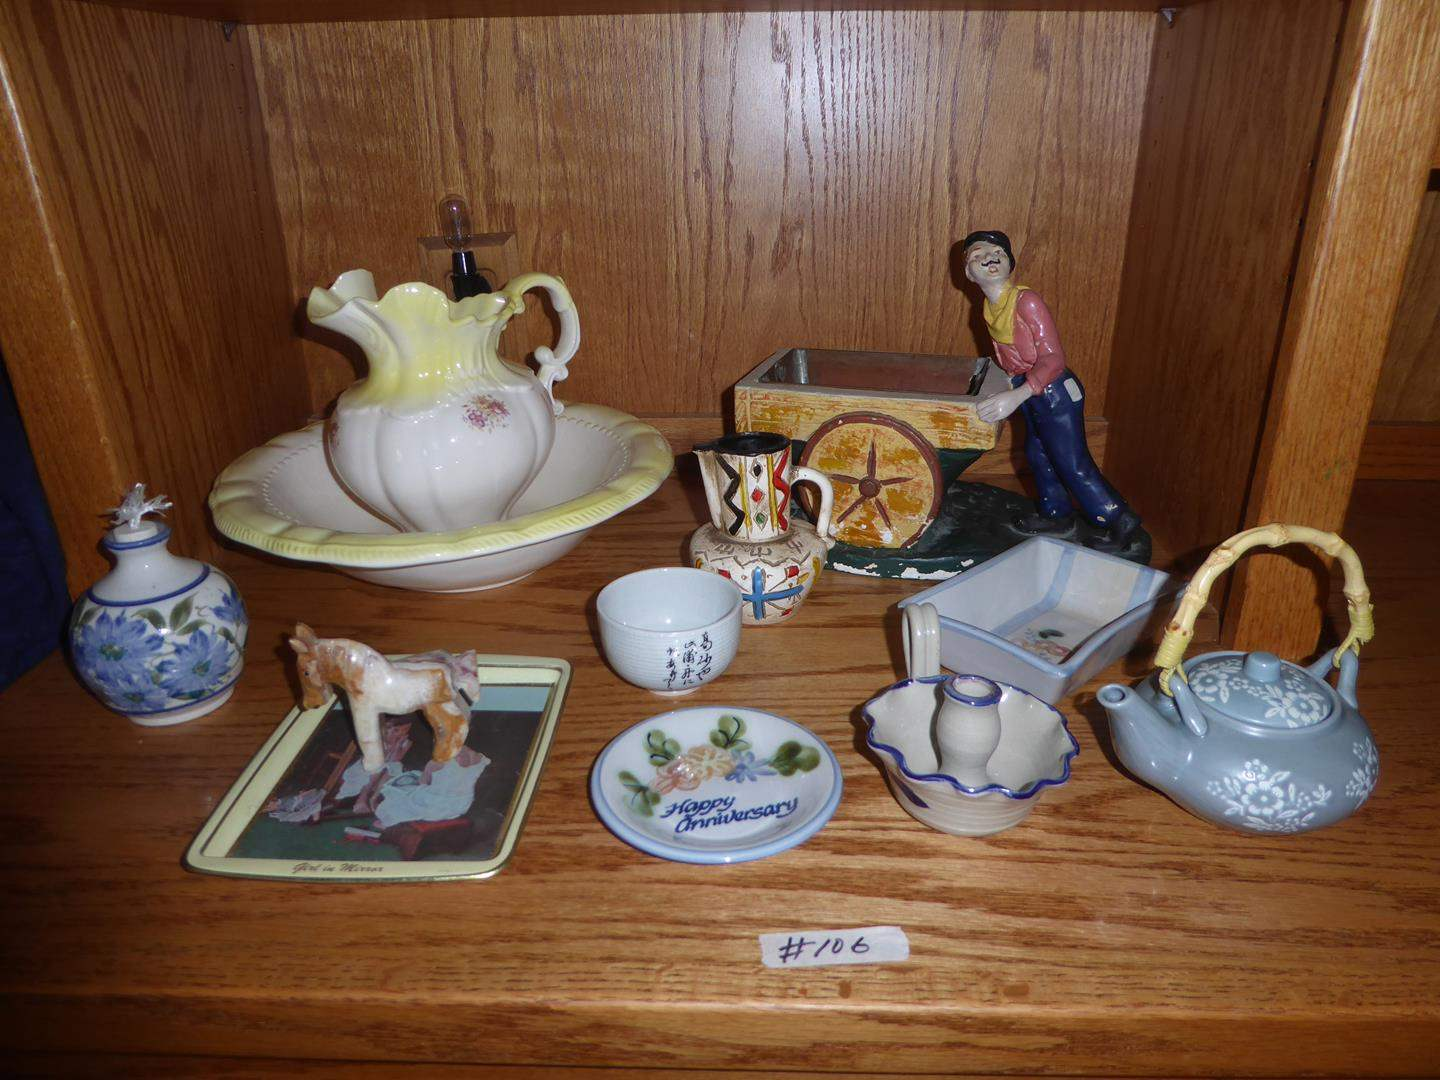 Lot # 106 - Ceramic Oil Lamp, Stone Horse Figurine, Saturday Evening Post Tray, Candle Holder, Planter & More (main image)